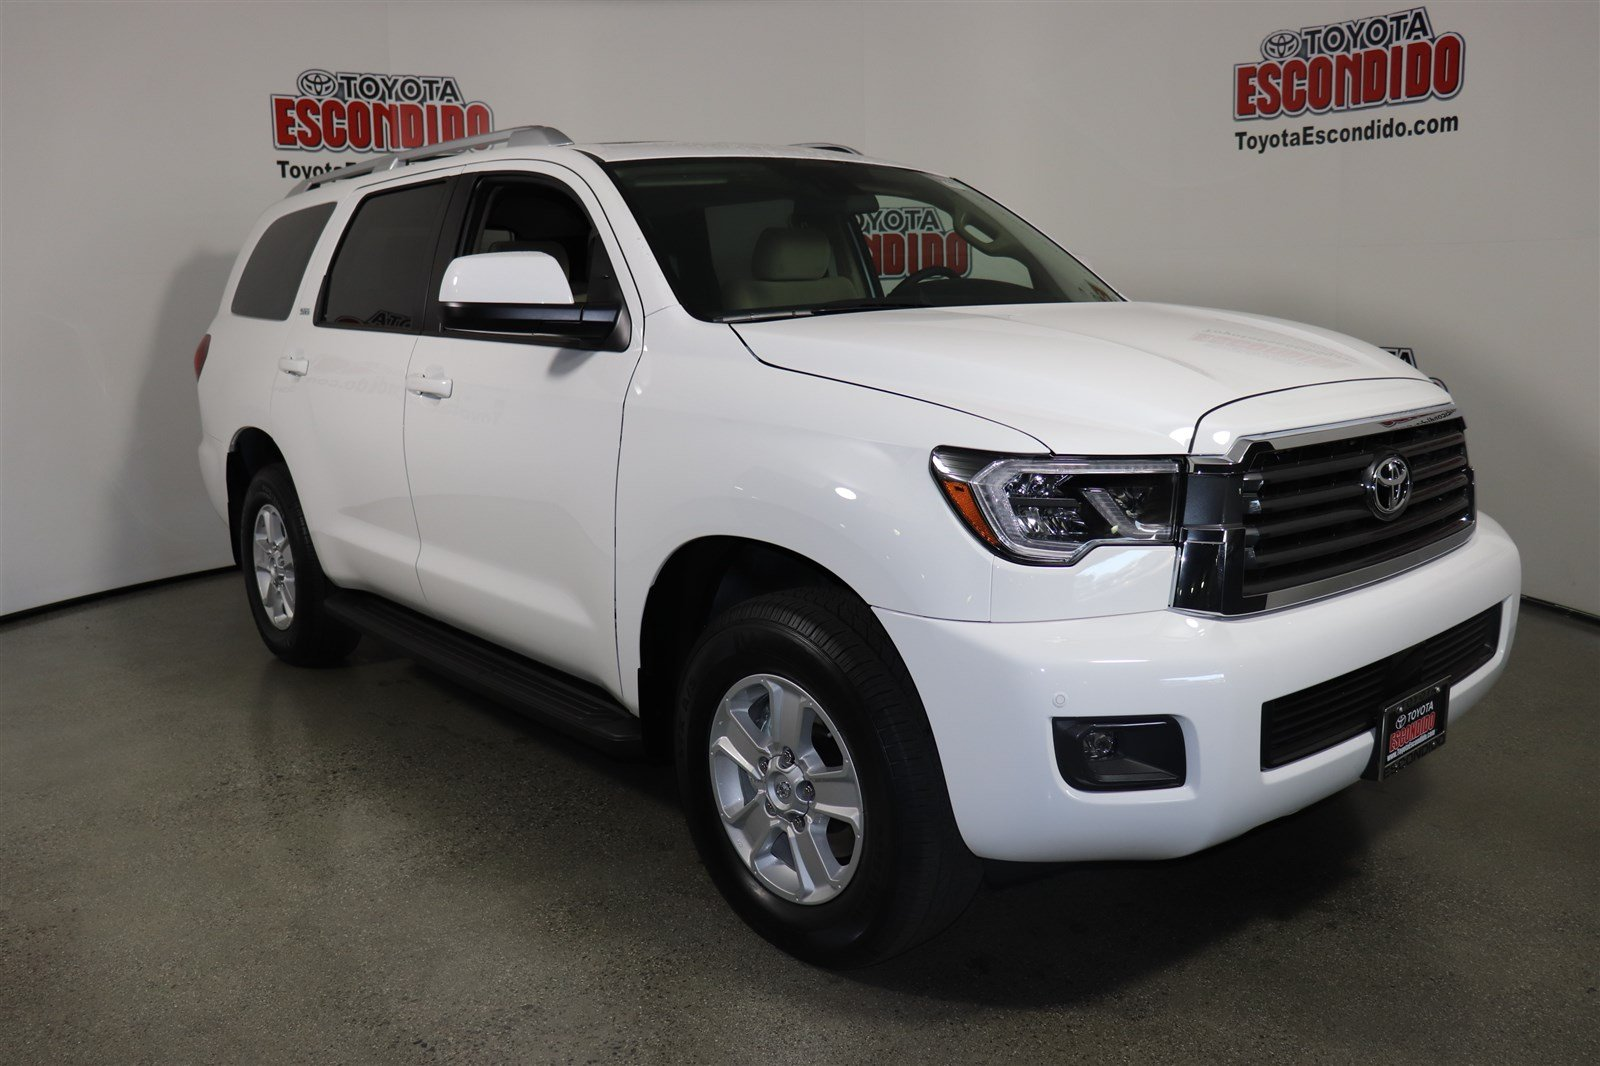 new sport utility toyota escondido sequoia inventory rwd in